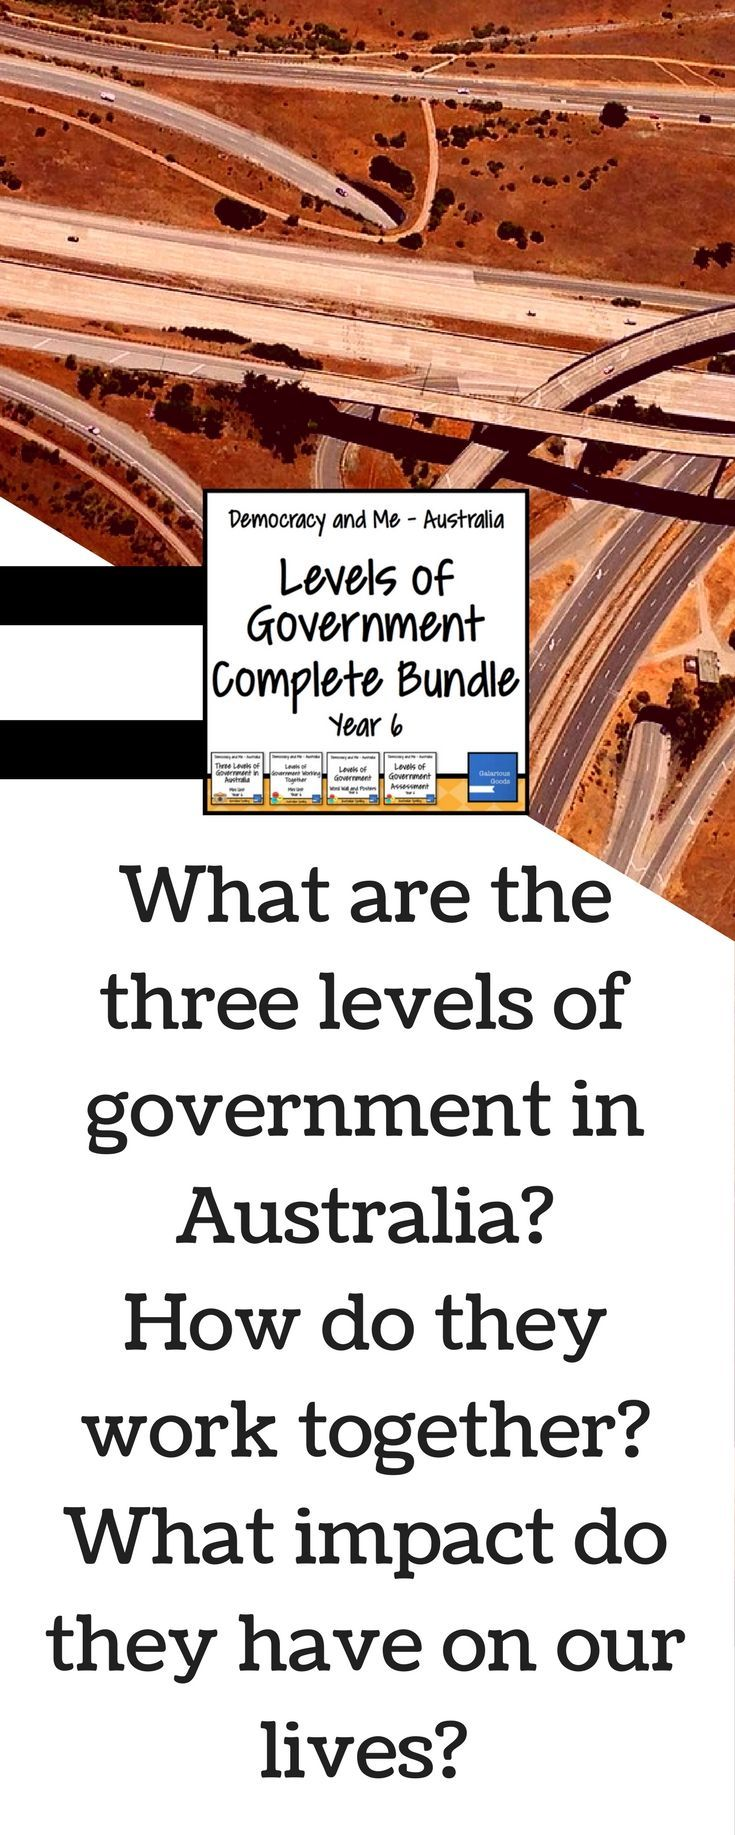 Year 6 Government in Australia teaching resource bundle containing 2 mini units, assessment resources and a word wall and posters package. Assist students to explore the three levels of government in Australia through fact sheets, activities, case studies and discussions. Includes 5 assessable tasks, answer keys, marking rubrics and extensive teaching notes. Designed for Year 6 HASS/Social Studies Australian Curriculum outcomes